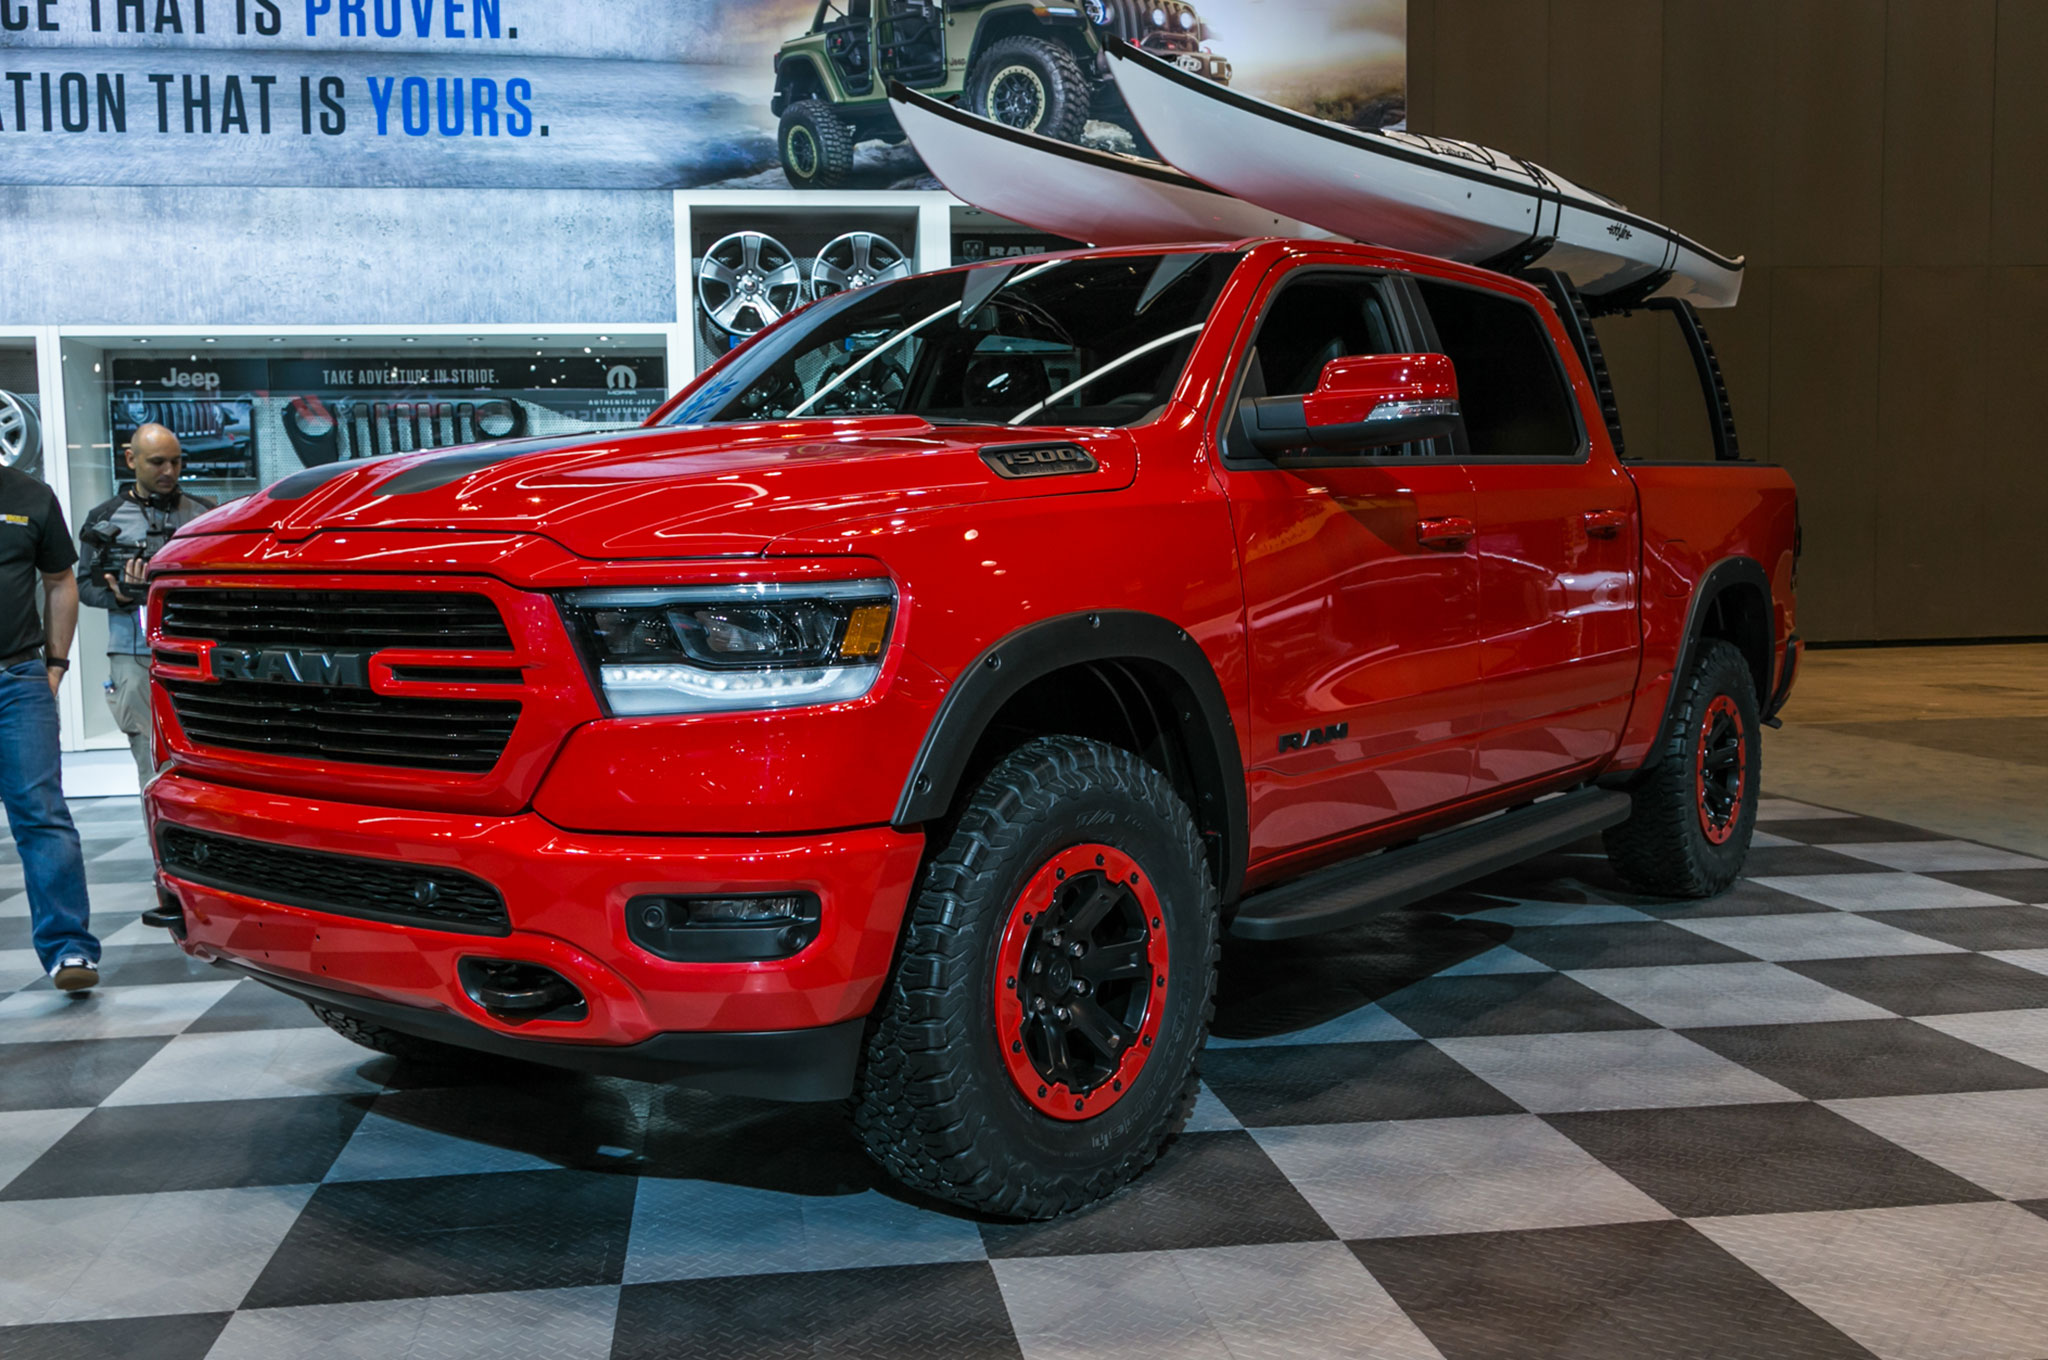 2019 Ram 1500 With Mopar Accessories Front Side View